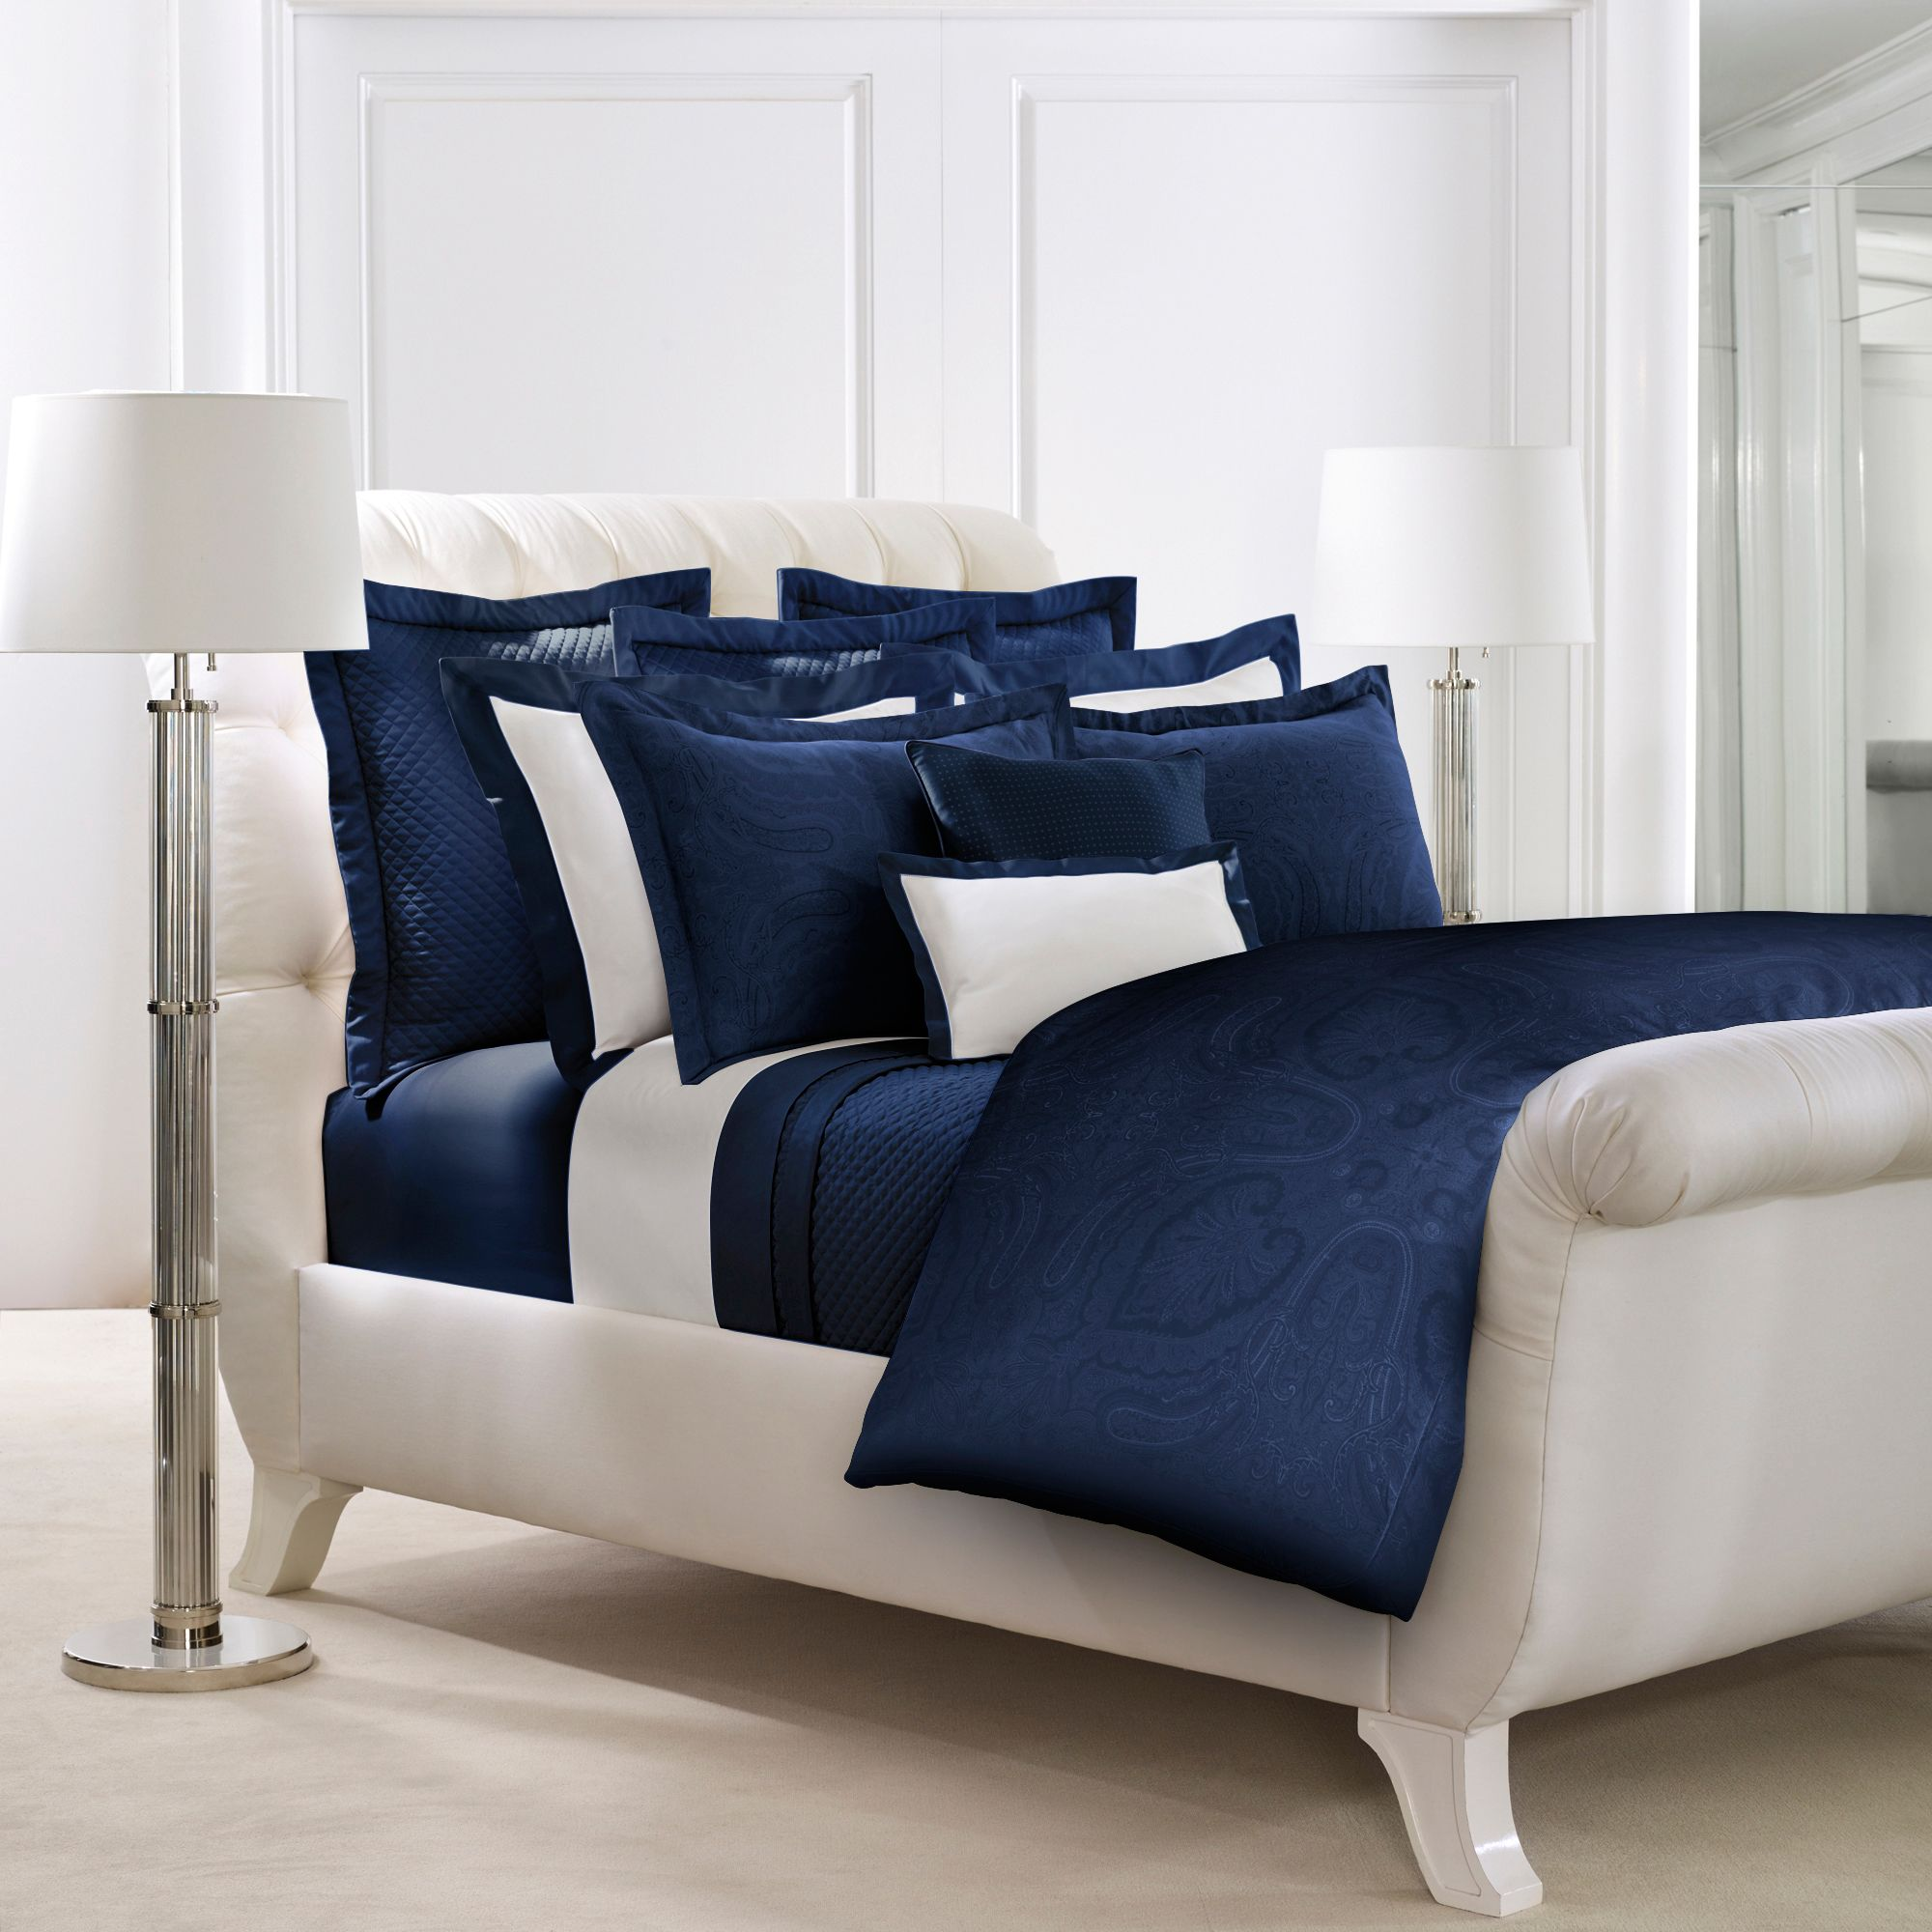 Ralph Lauren Home Doncaster Bedding Range In Navy ...